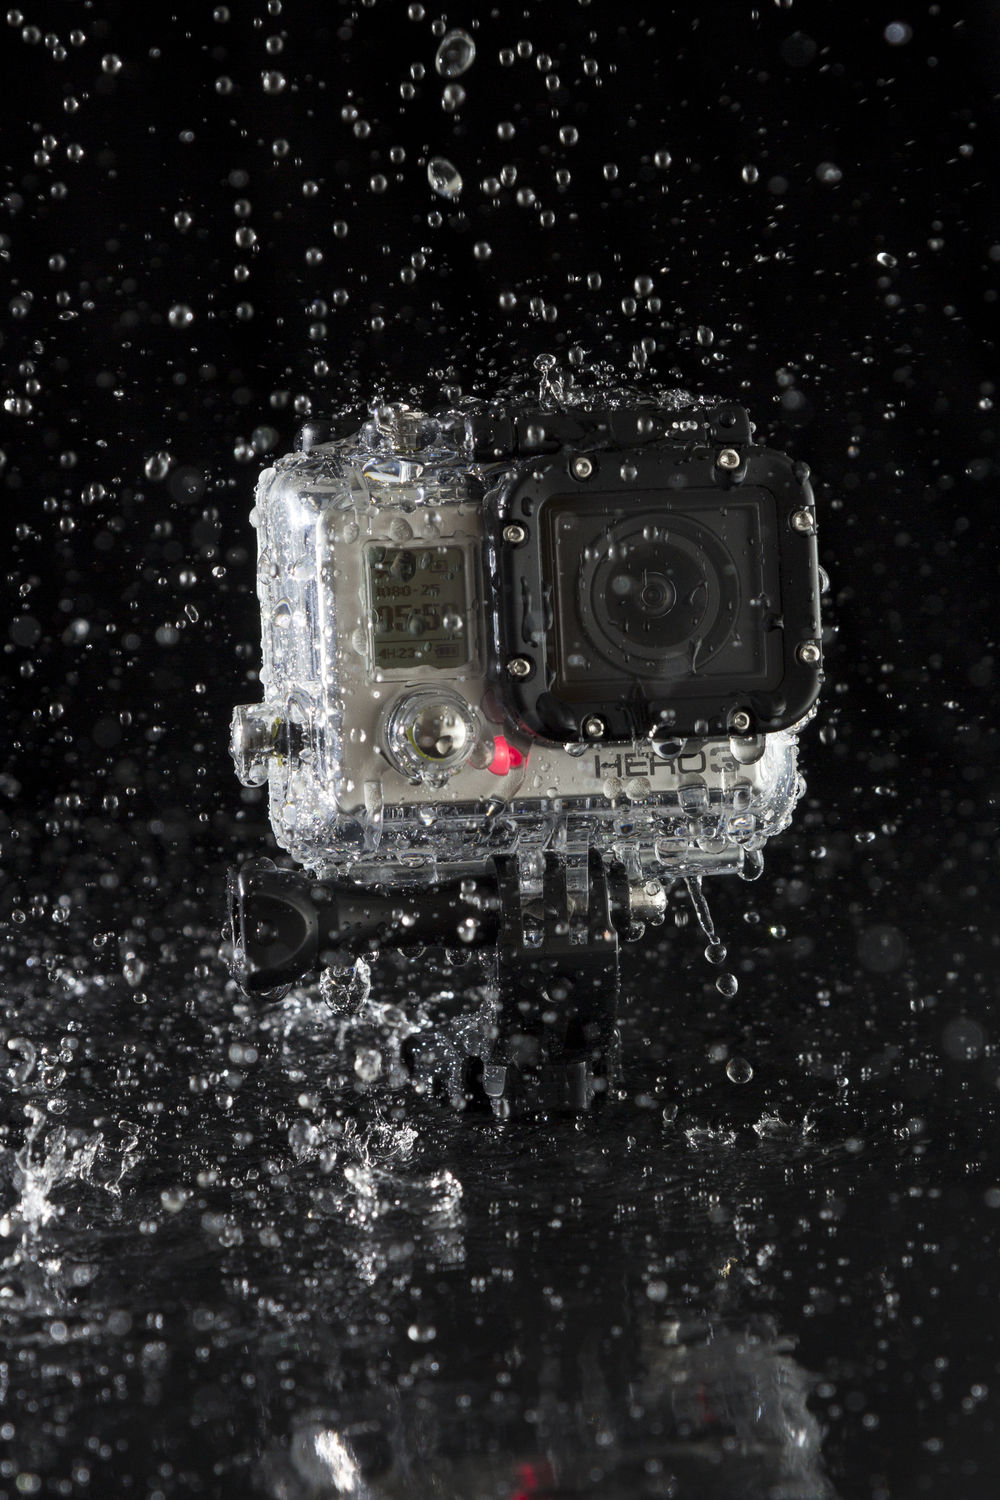 shot of a GoPro camera getting wet